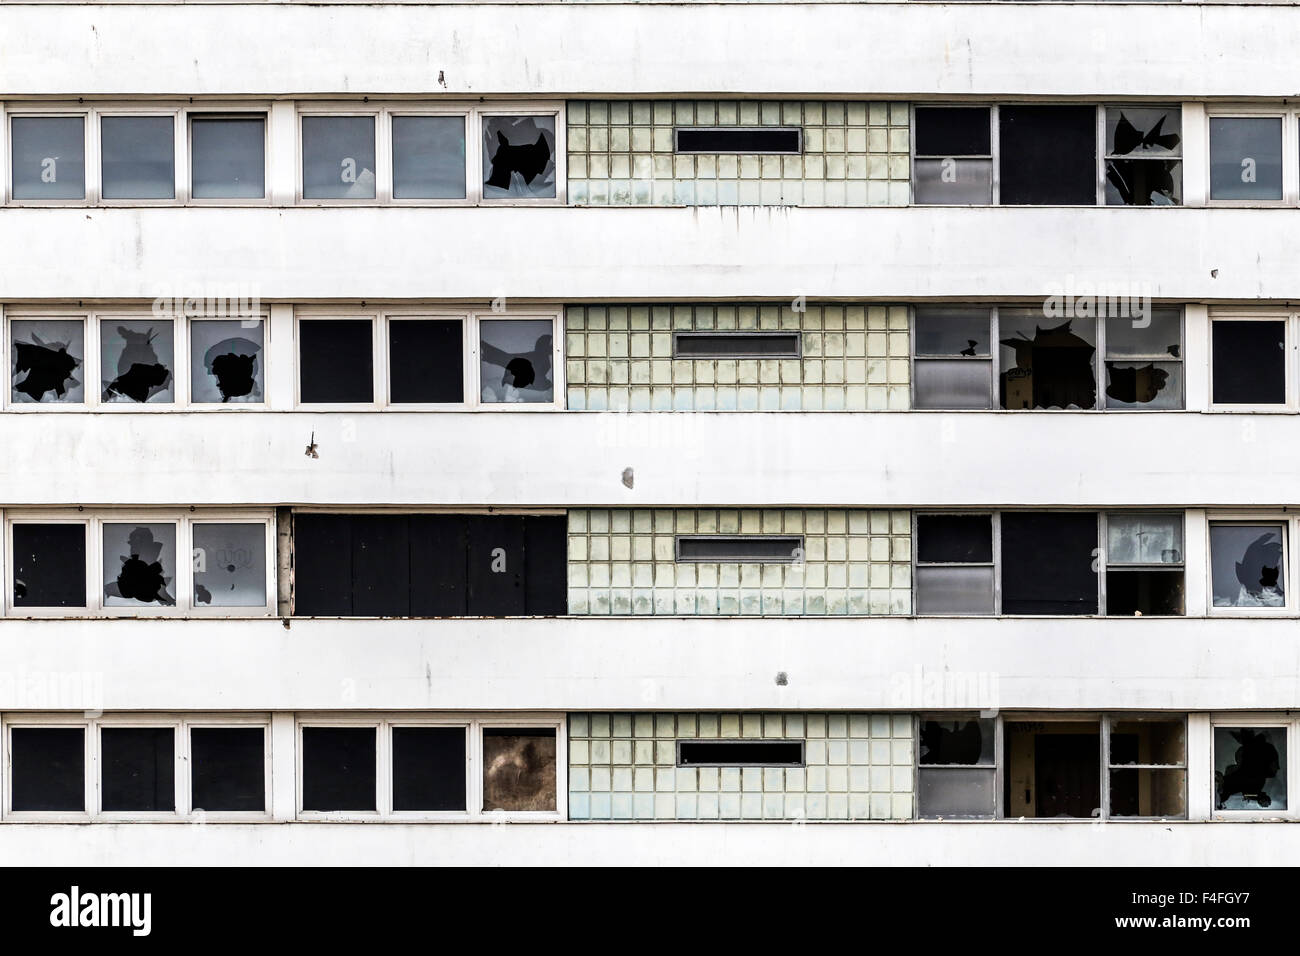 Abandoned, derelict highrise apartment residential tower block building MDU detail - Stock Image